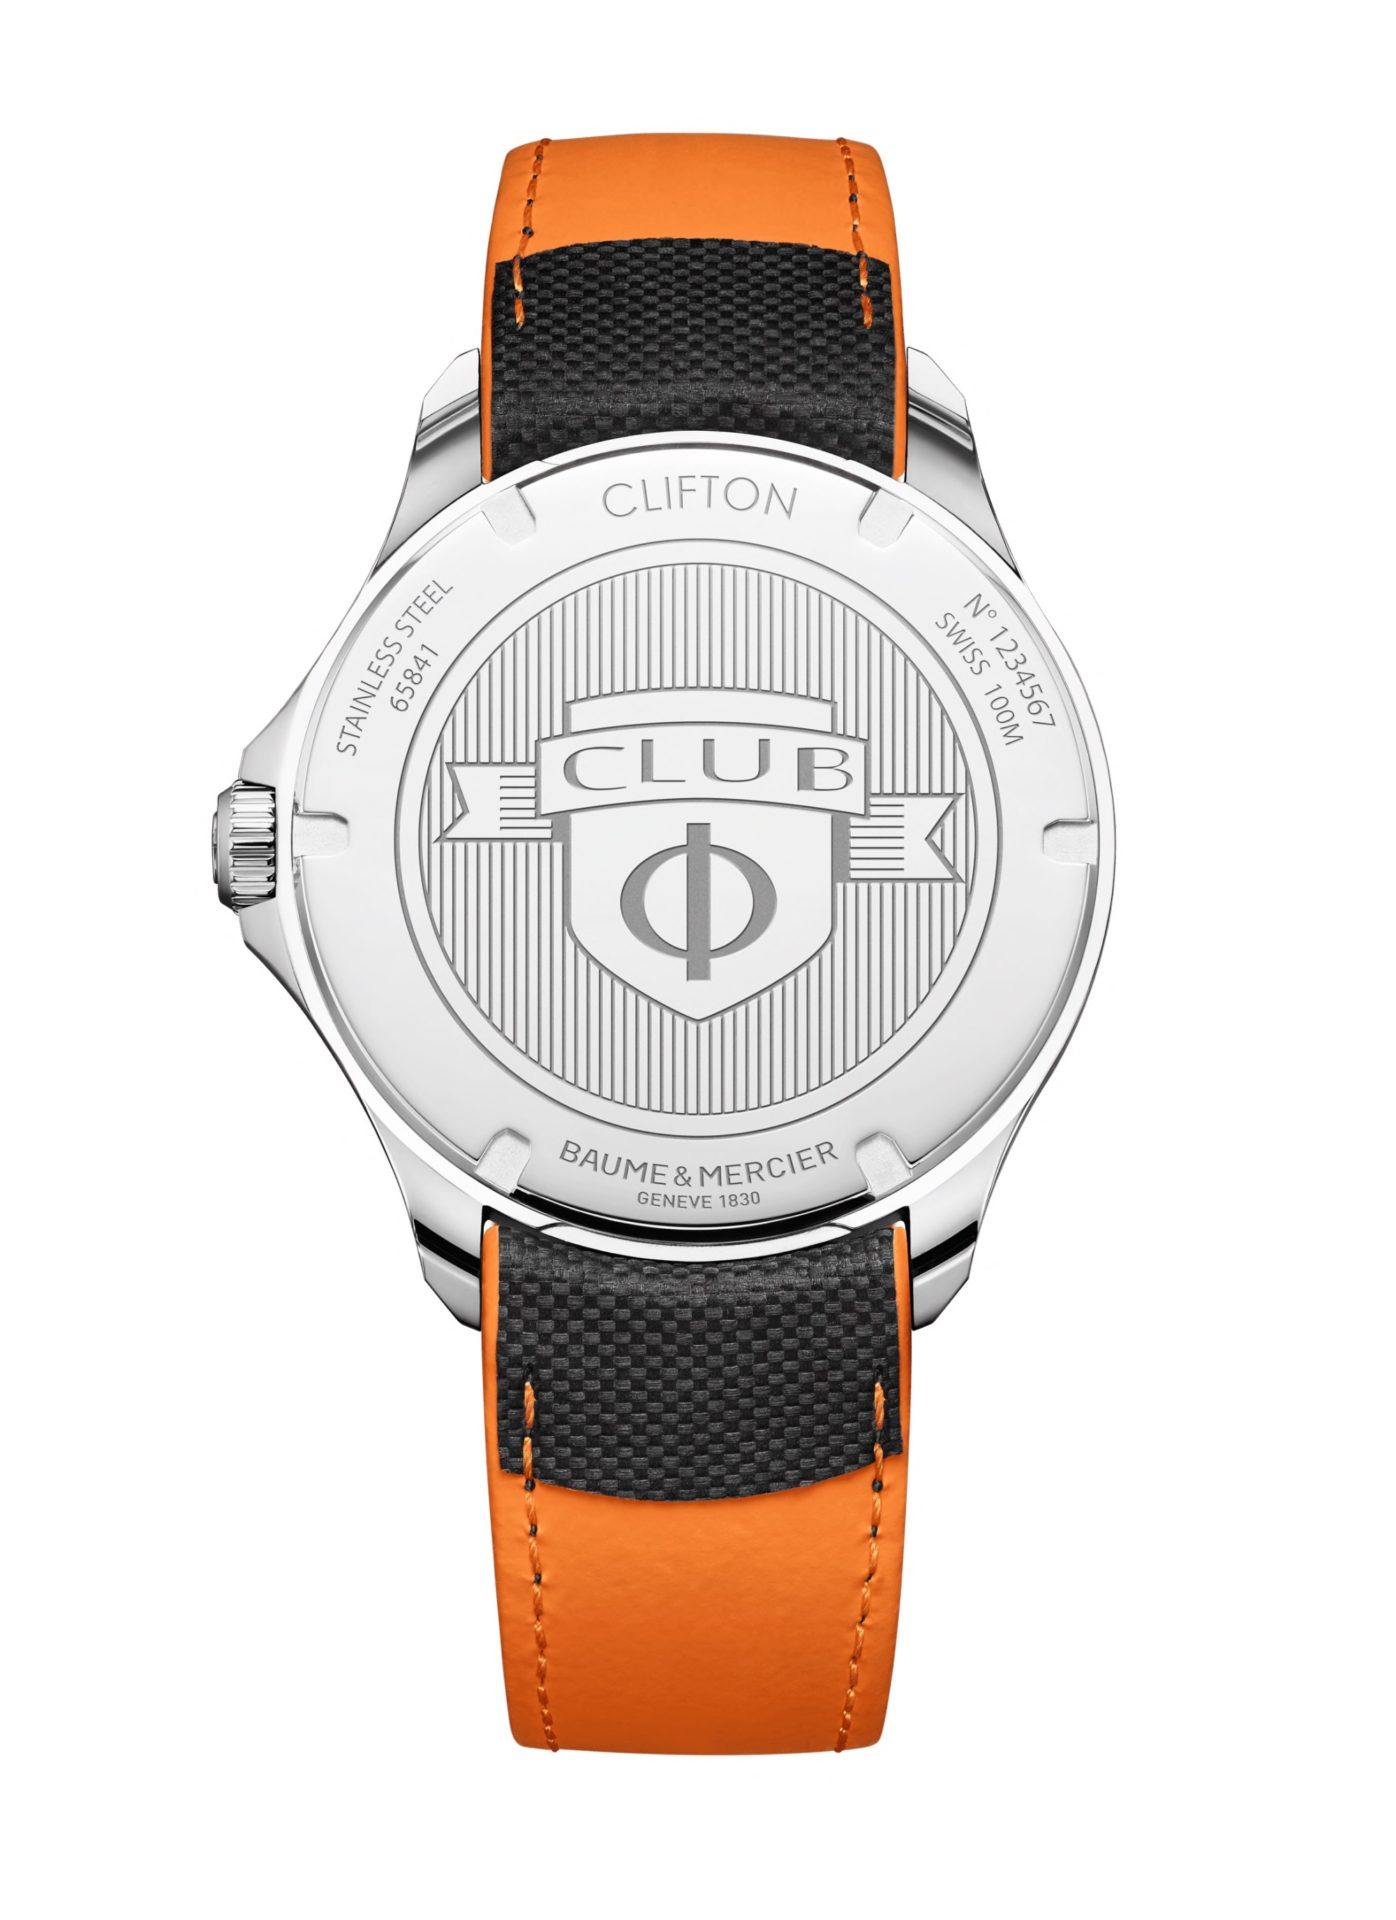 Baume-&-Mercier-Clifton-Club-10410*-Hall-of-Time